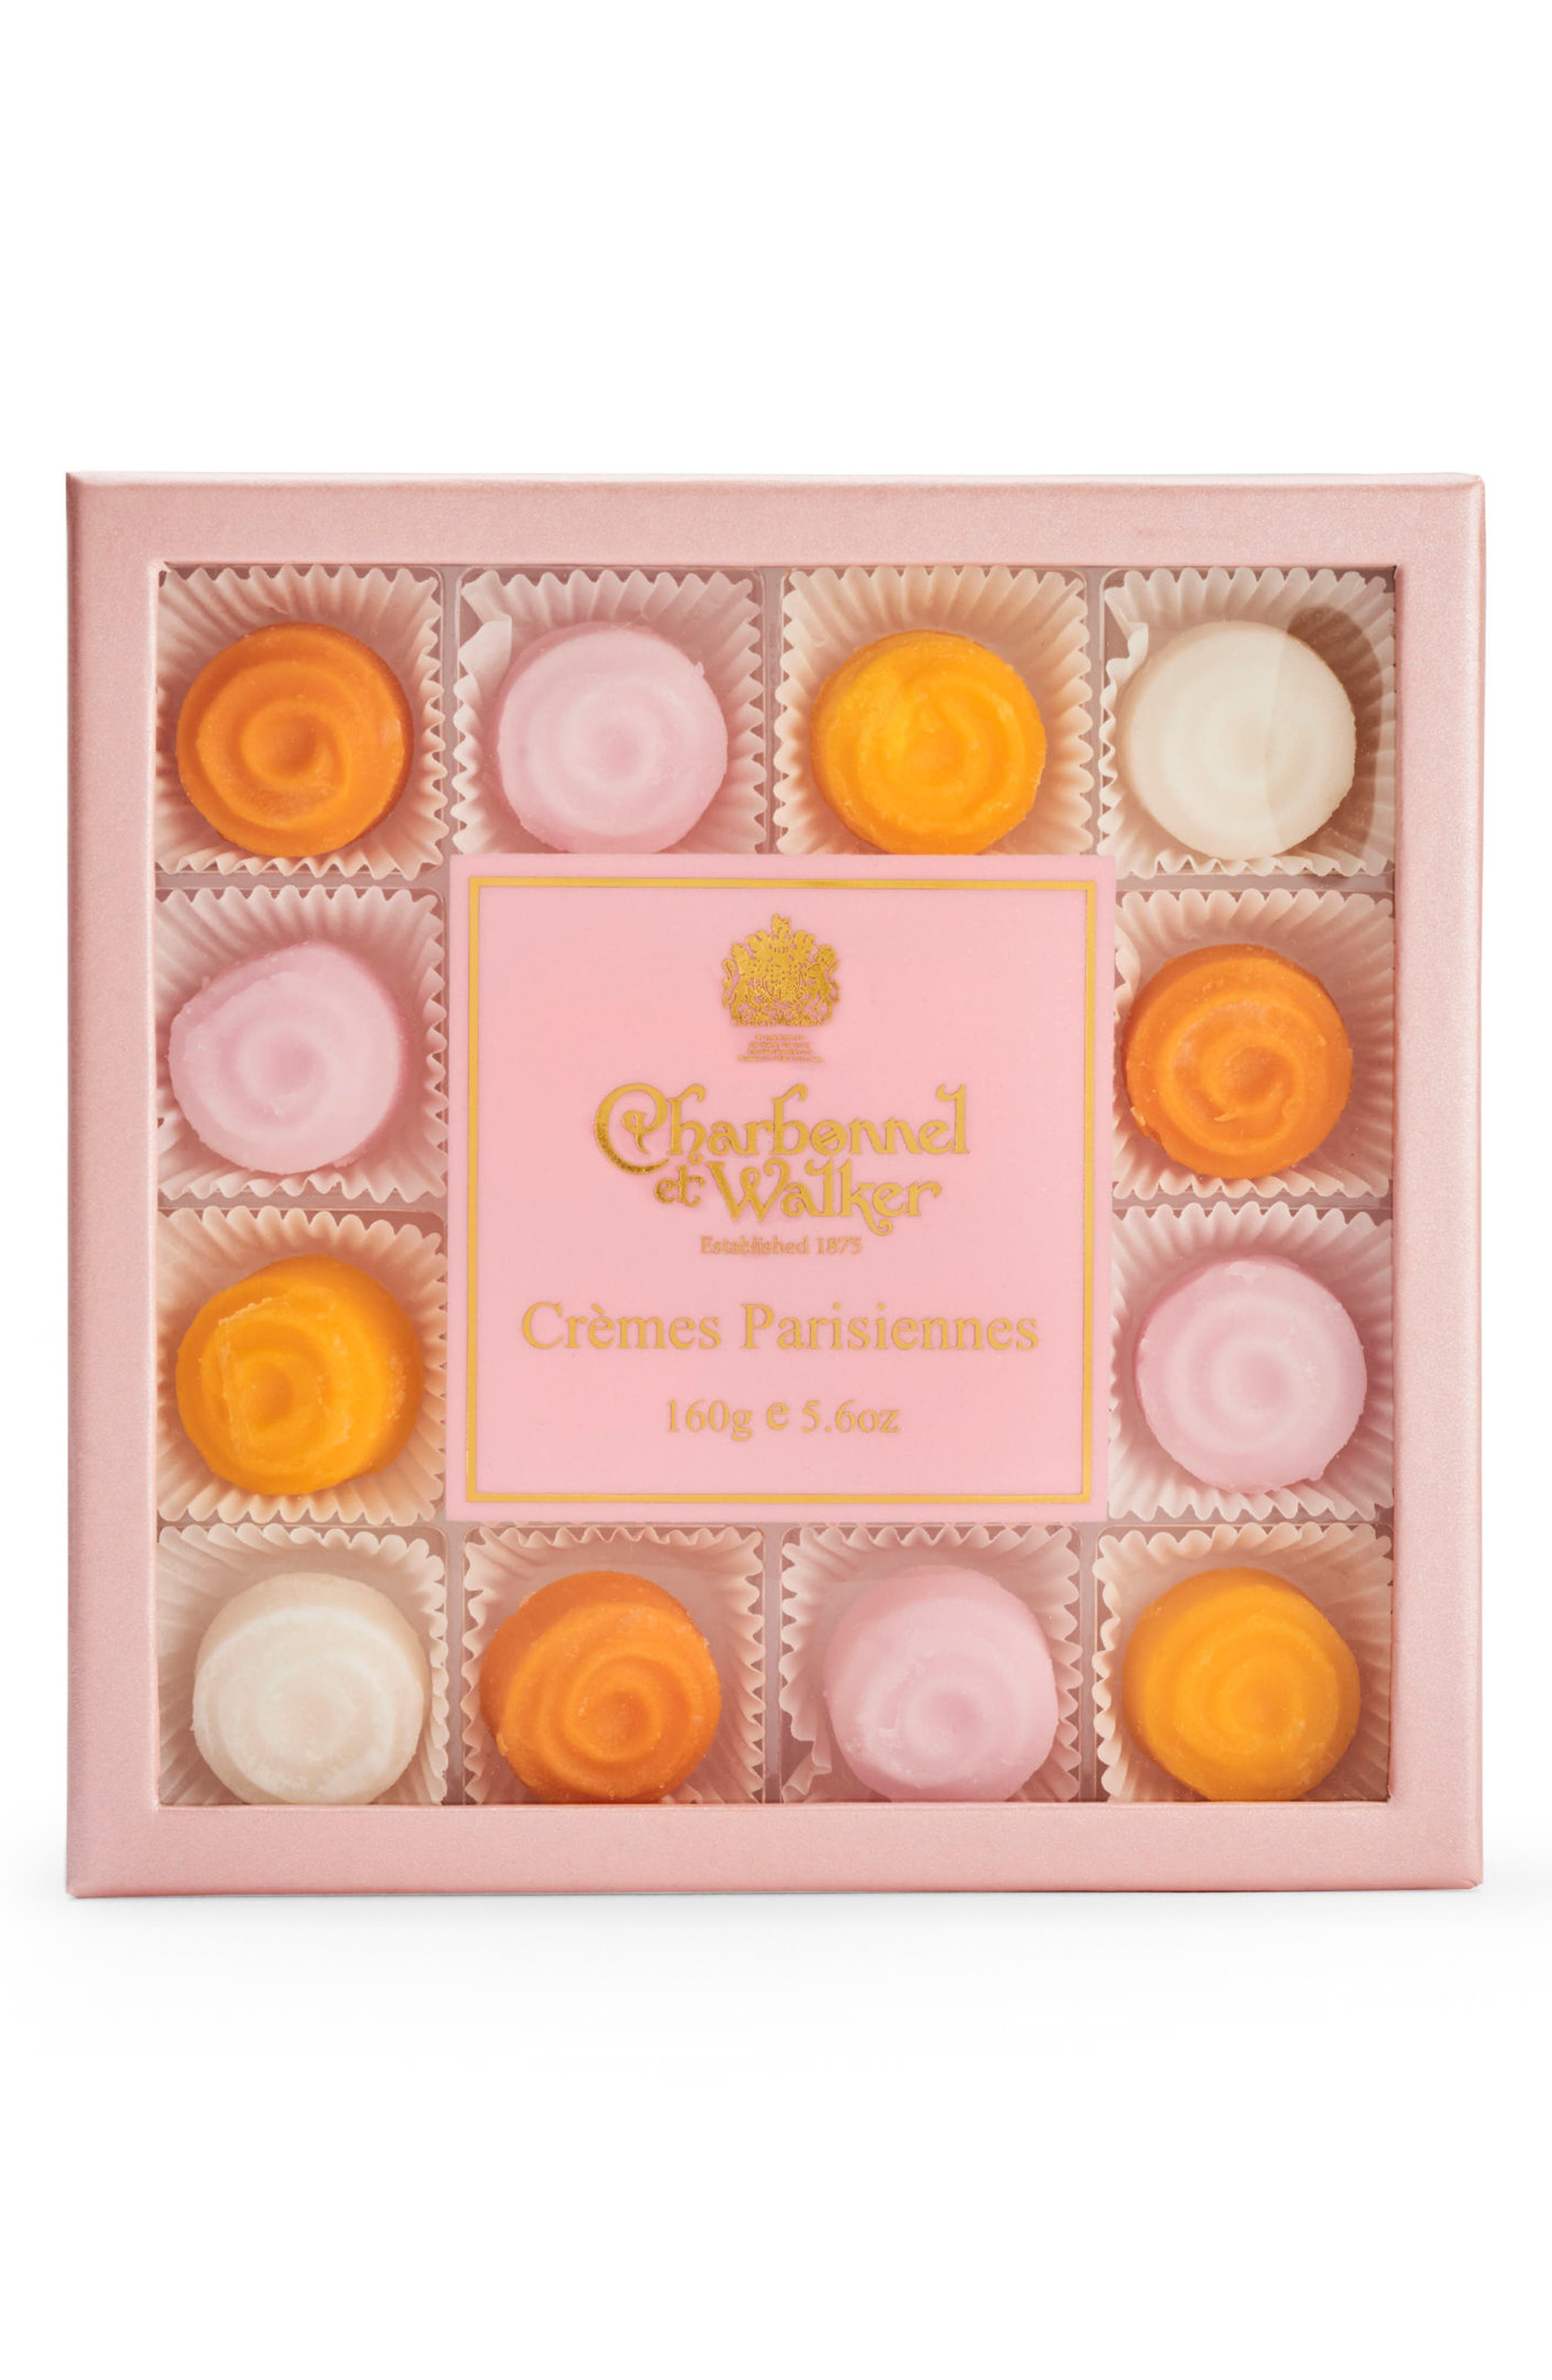 Cremes Parisiennes in Gift Box,                             Main thumbnail 1, color,